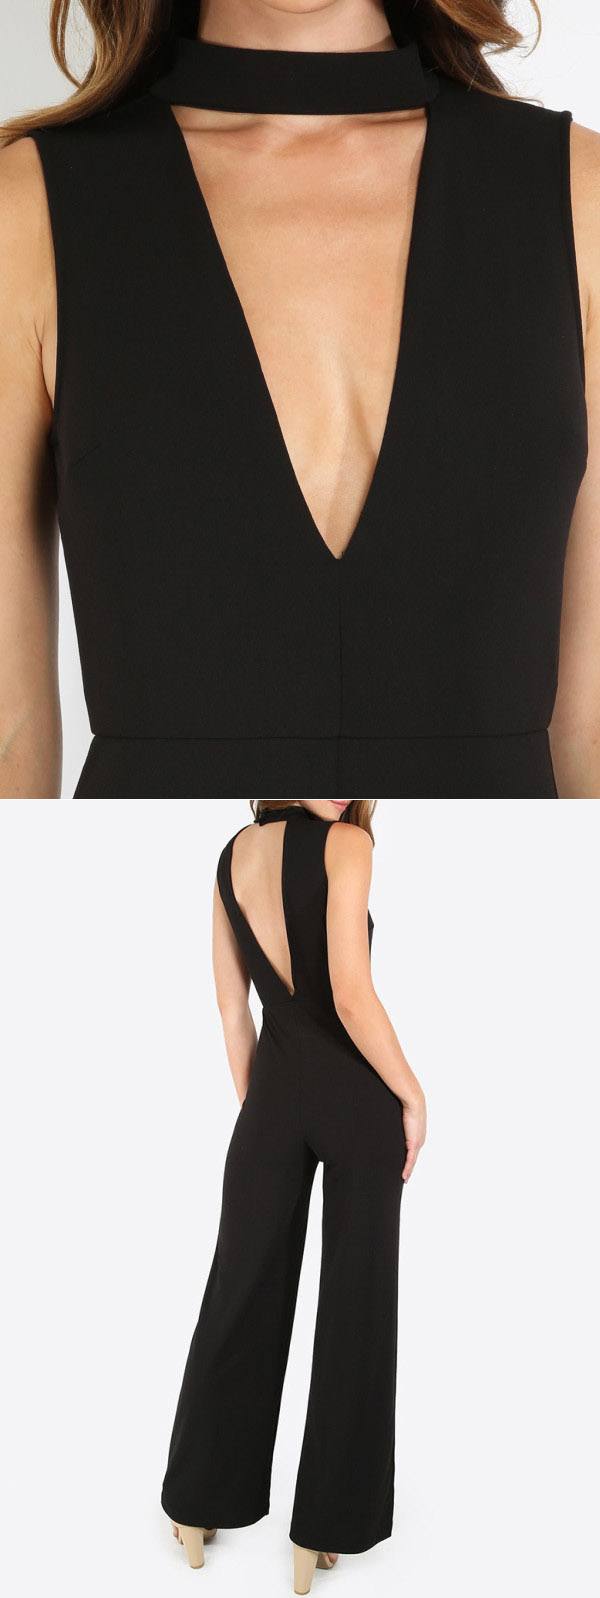 Sexy V Back Sleeveless Jumpsuit Women